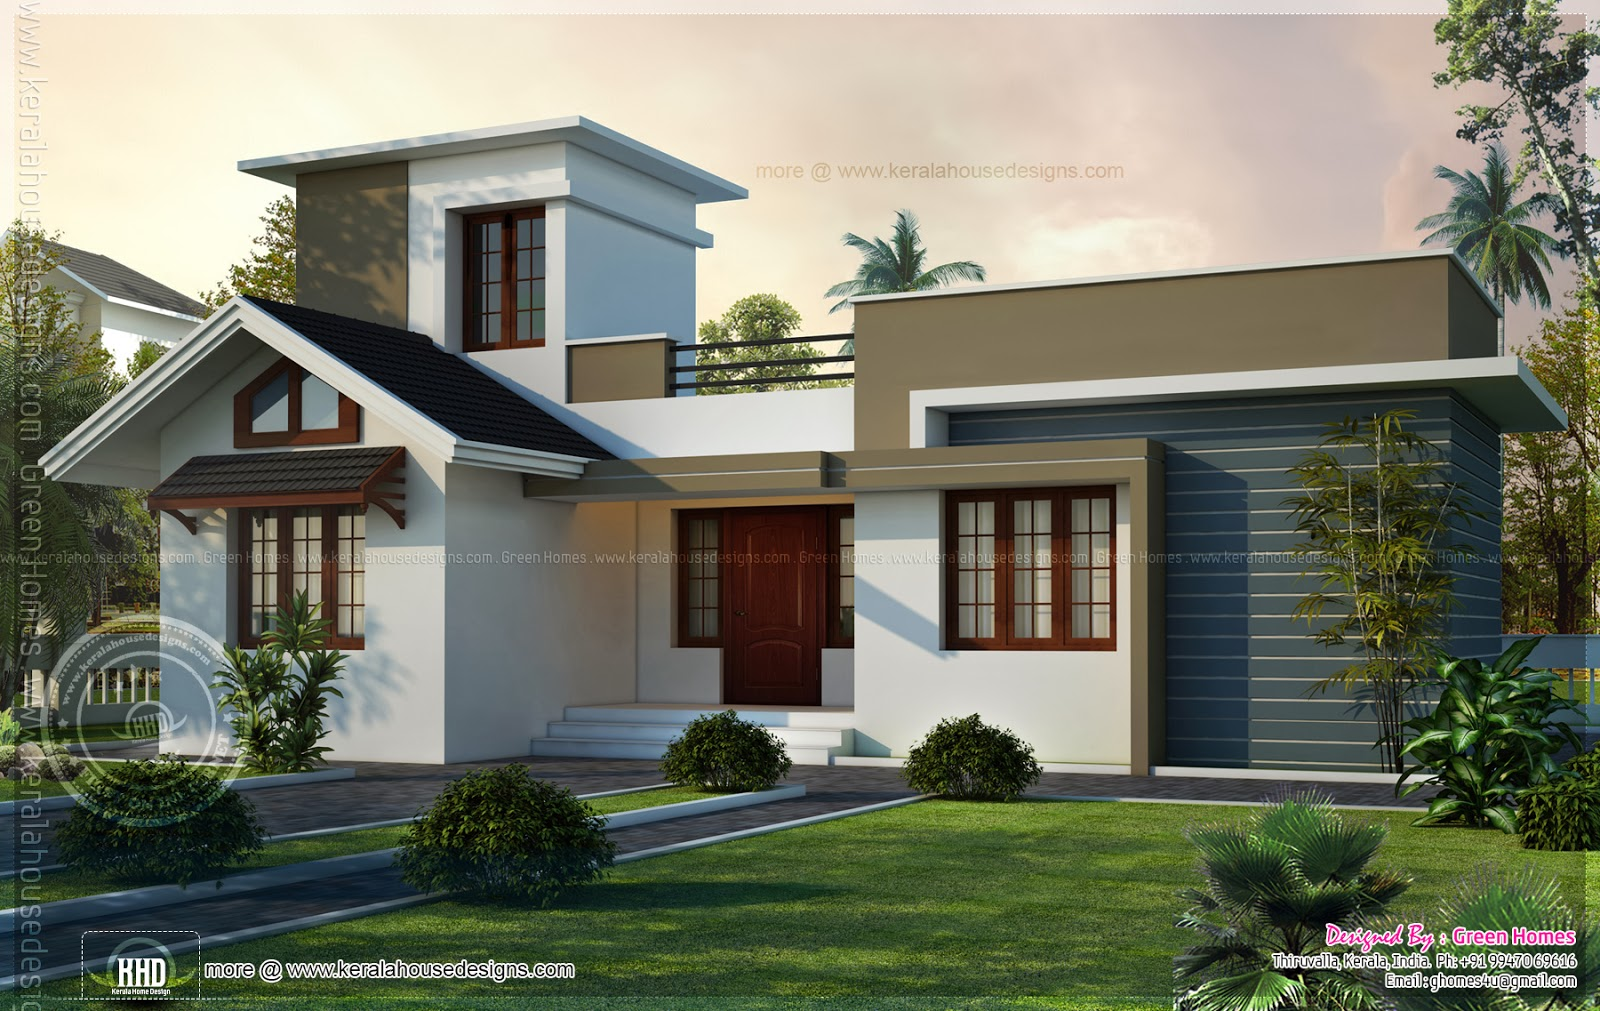 Small Space House Design 1000 Square Feet Small House Design Kerala Home Design